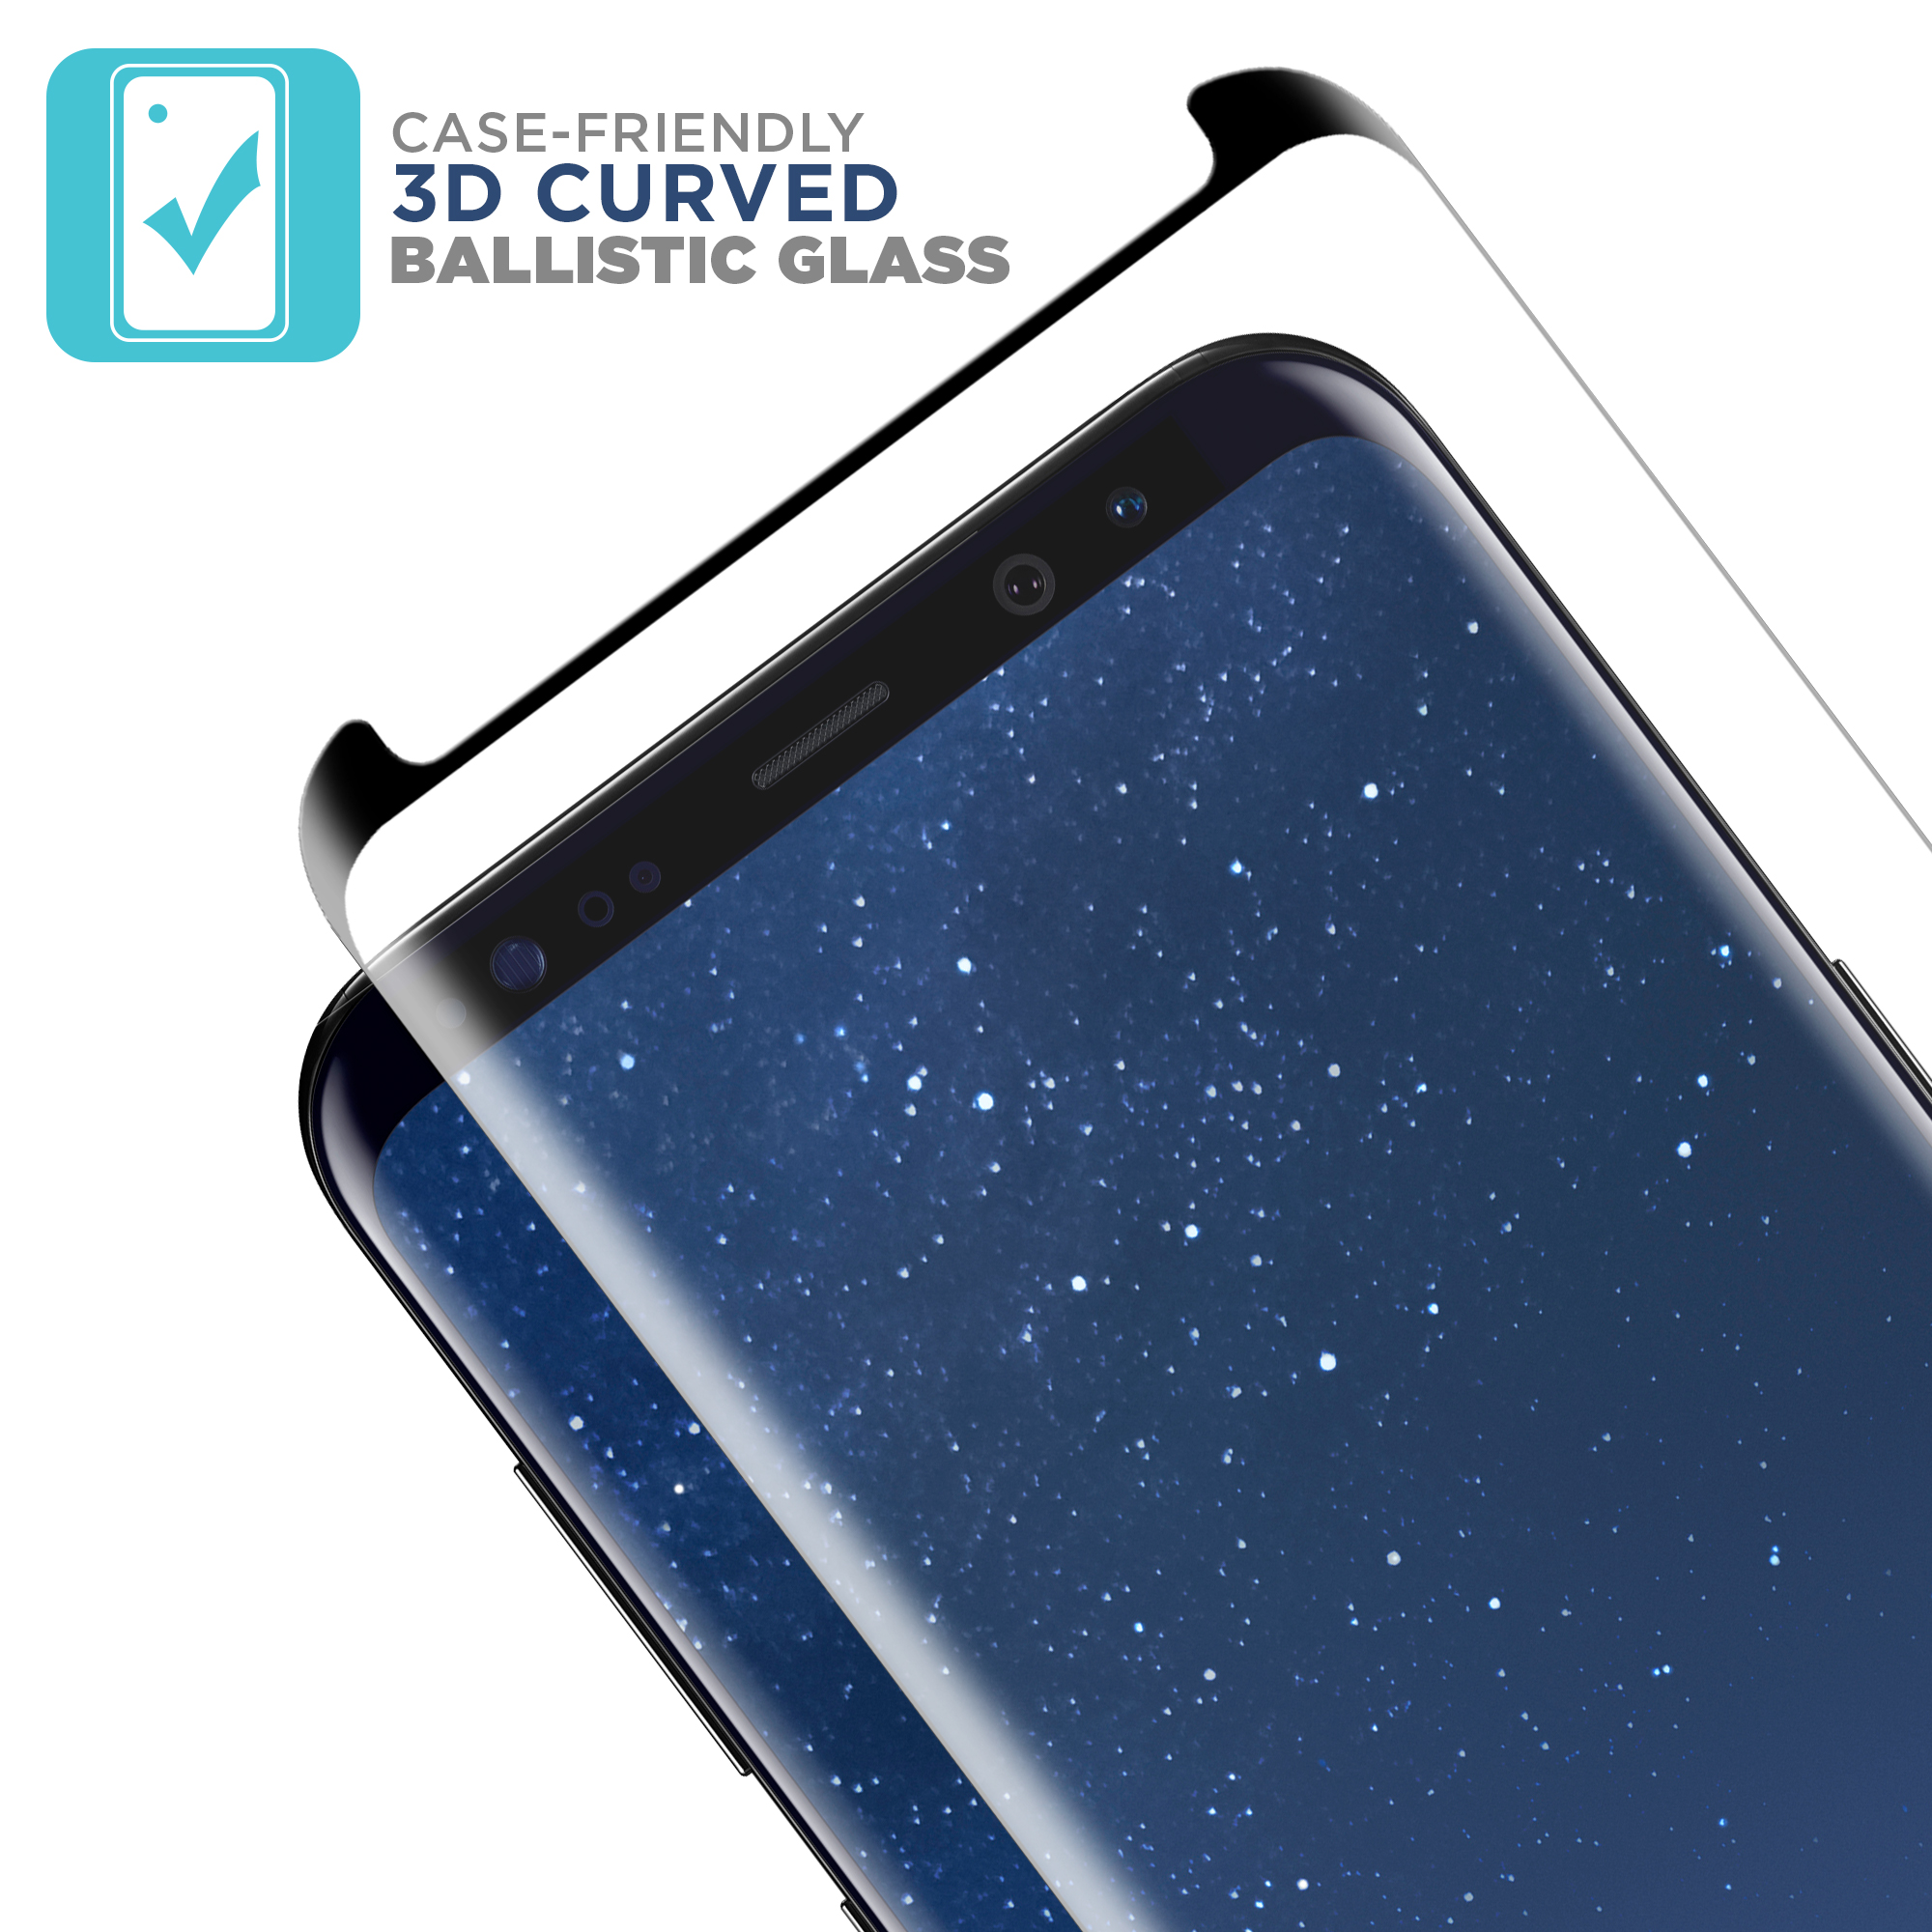 Tech Armor 3d Edge Glass Screen Protector Black1 Pack For Tempered Premium Samsung Note 8 Case Friendly Good Touchscreen Clear Bening Galaxy S8 From Curved Ballistic Black 1